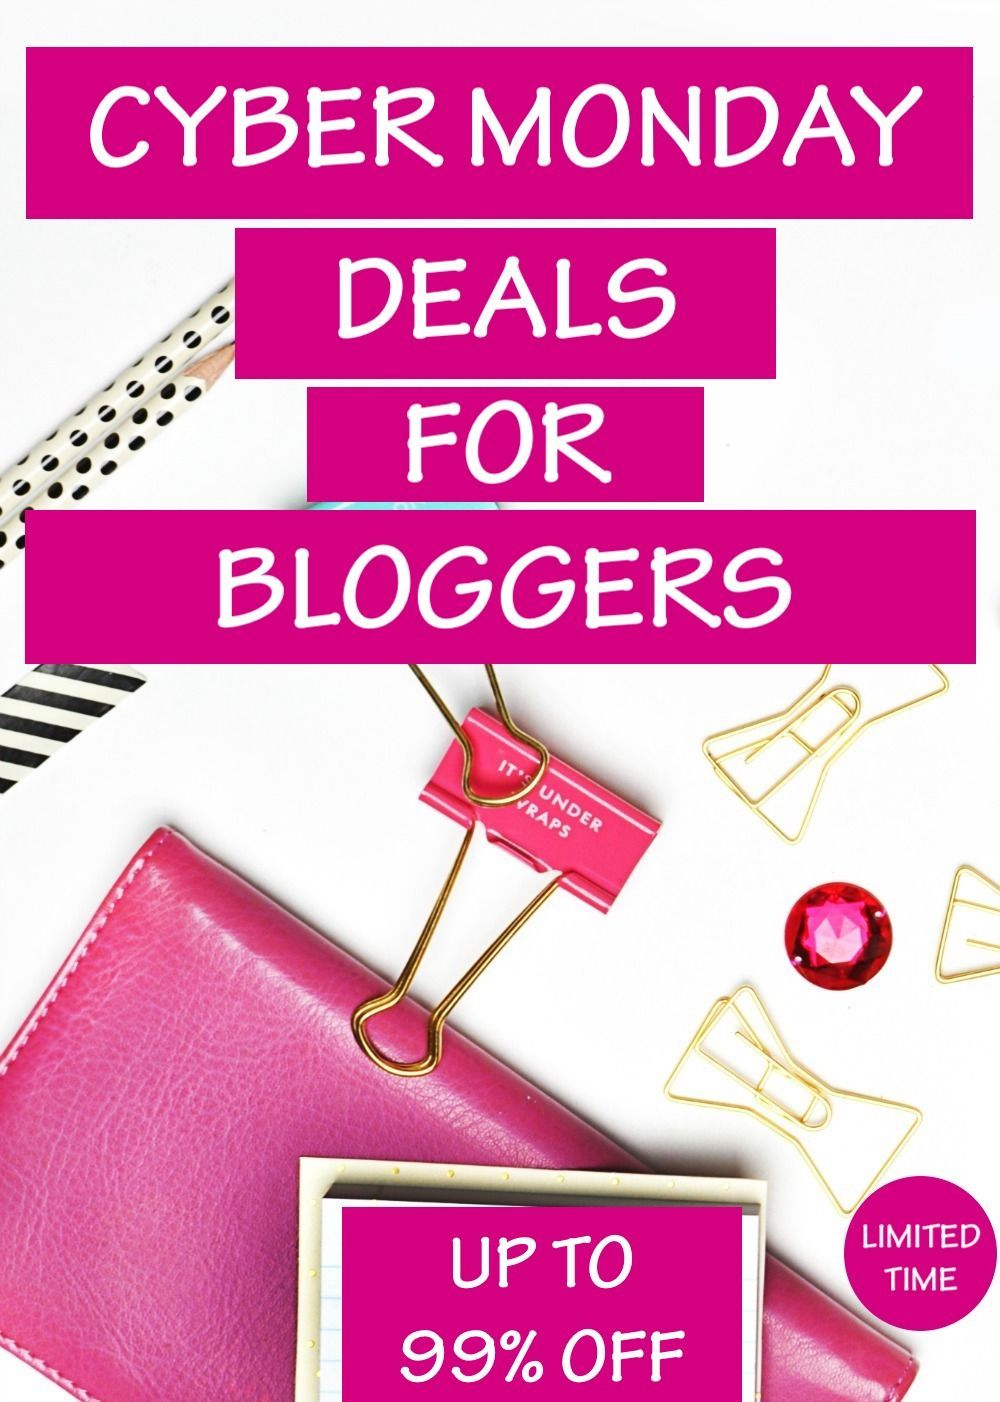 Best Black Friday Deals For Bloggers 2020 Cyber Monday Discount Offers Best Cyber Monday Deals Best Black Friday Best Cyber Monday